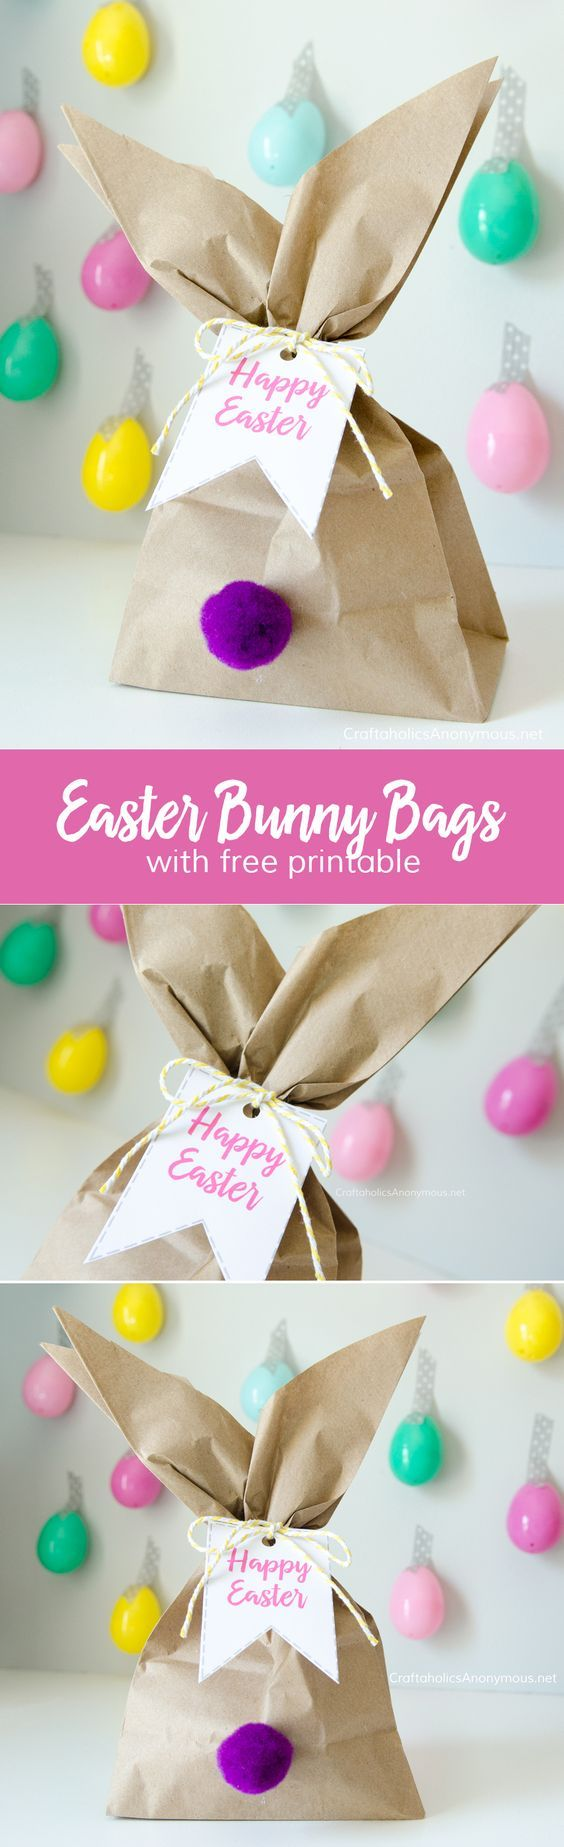 Easter bunny gift bags with free printable tags easter easter easter bunny gift bags with free printable tags easter ideas for kidseaster negle Choice Image